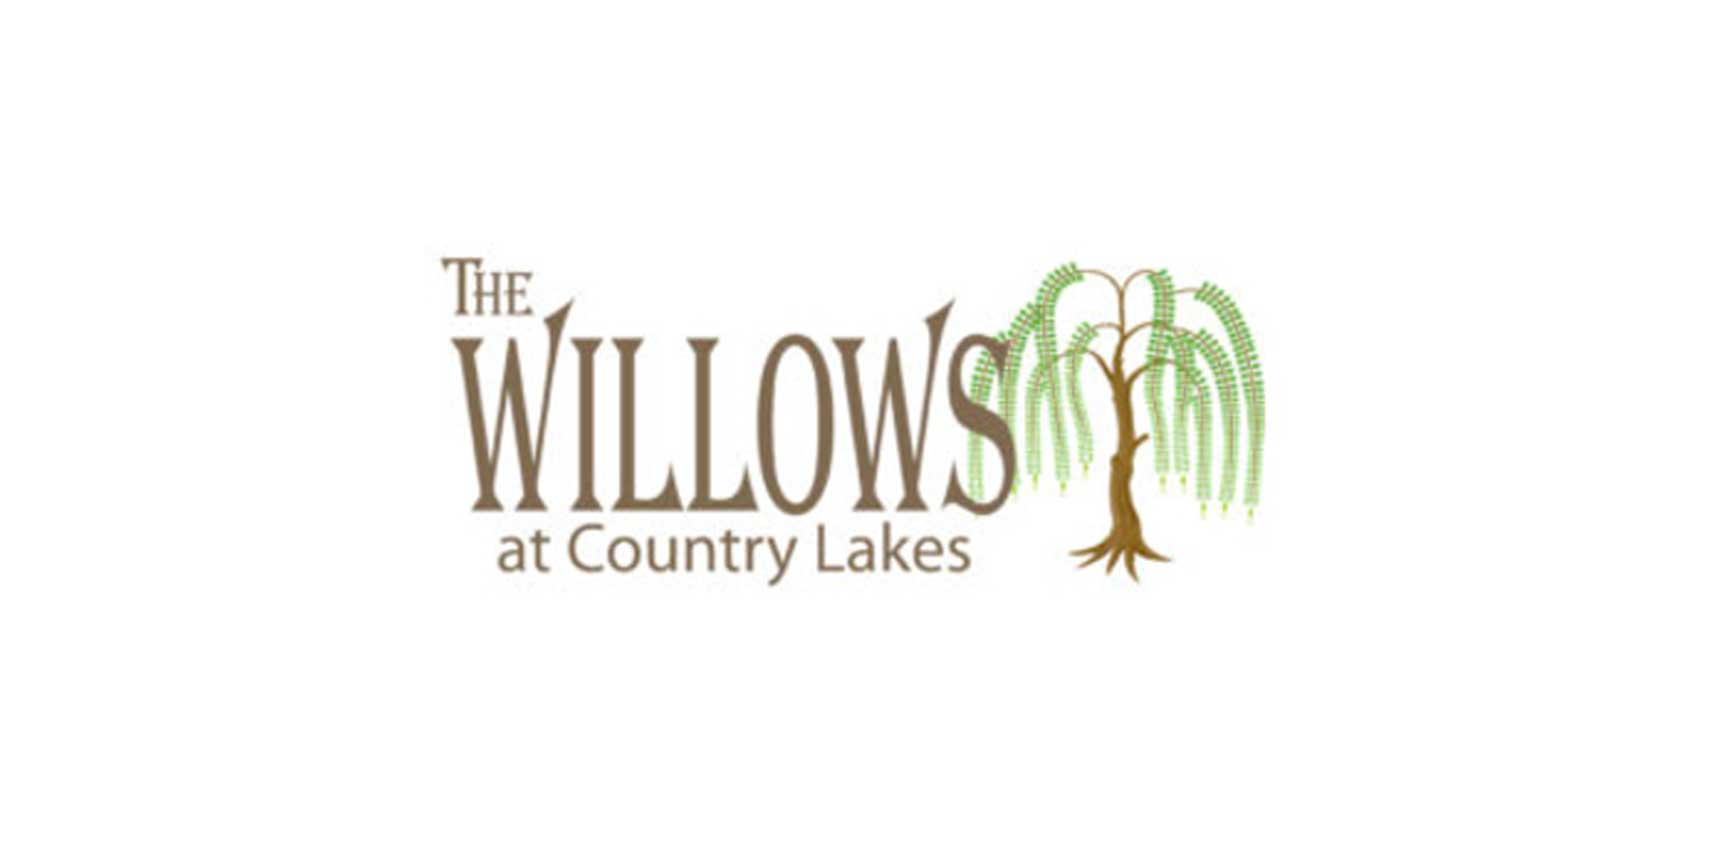 House for sale: The Willows at Country Lakes